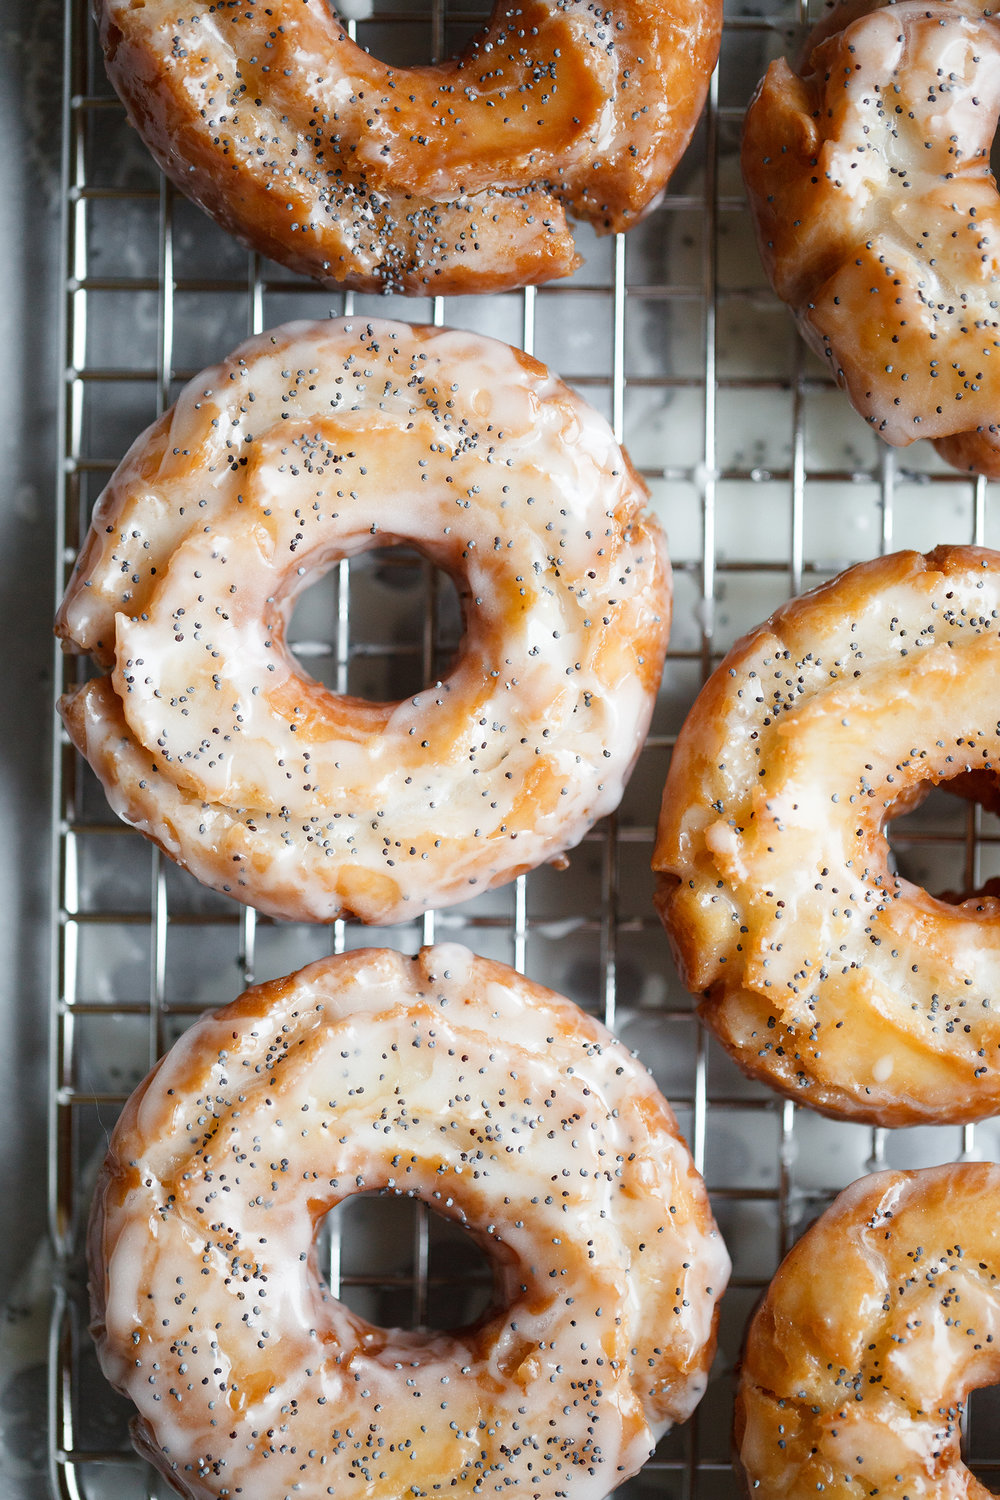 Lemon Poppy Seed Old Fashioned Donuts - Now, Forager - Teresa Floyd.jpg